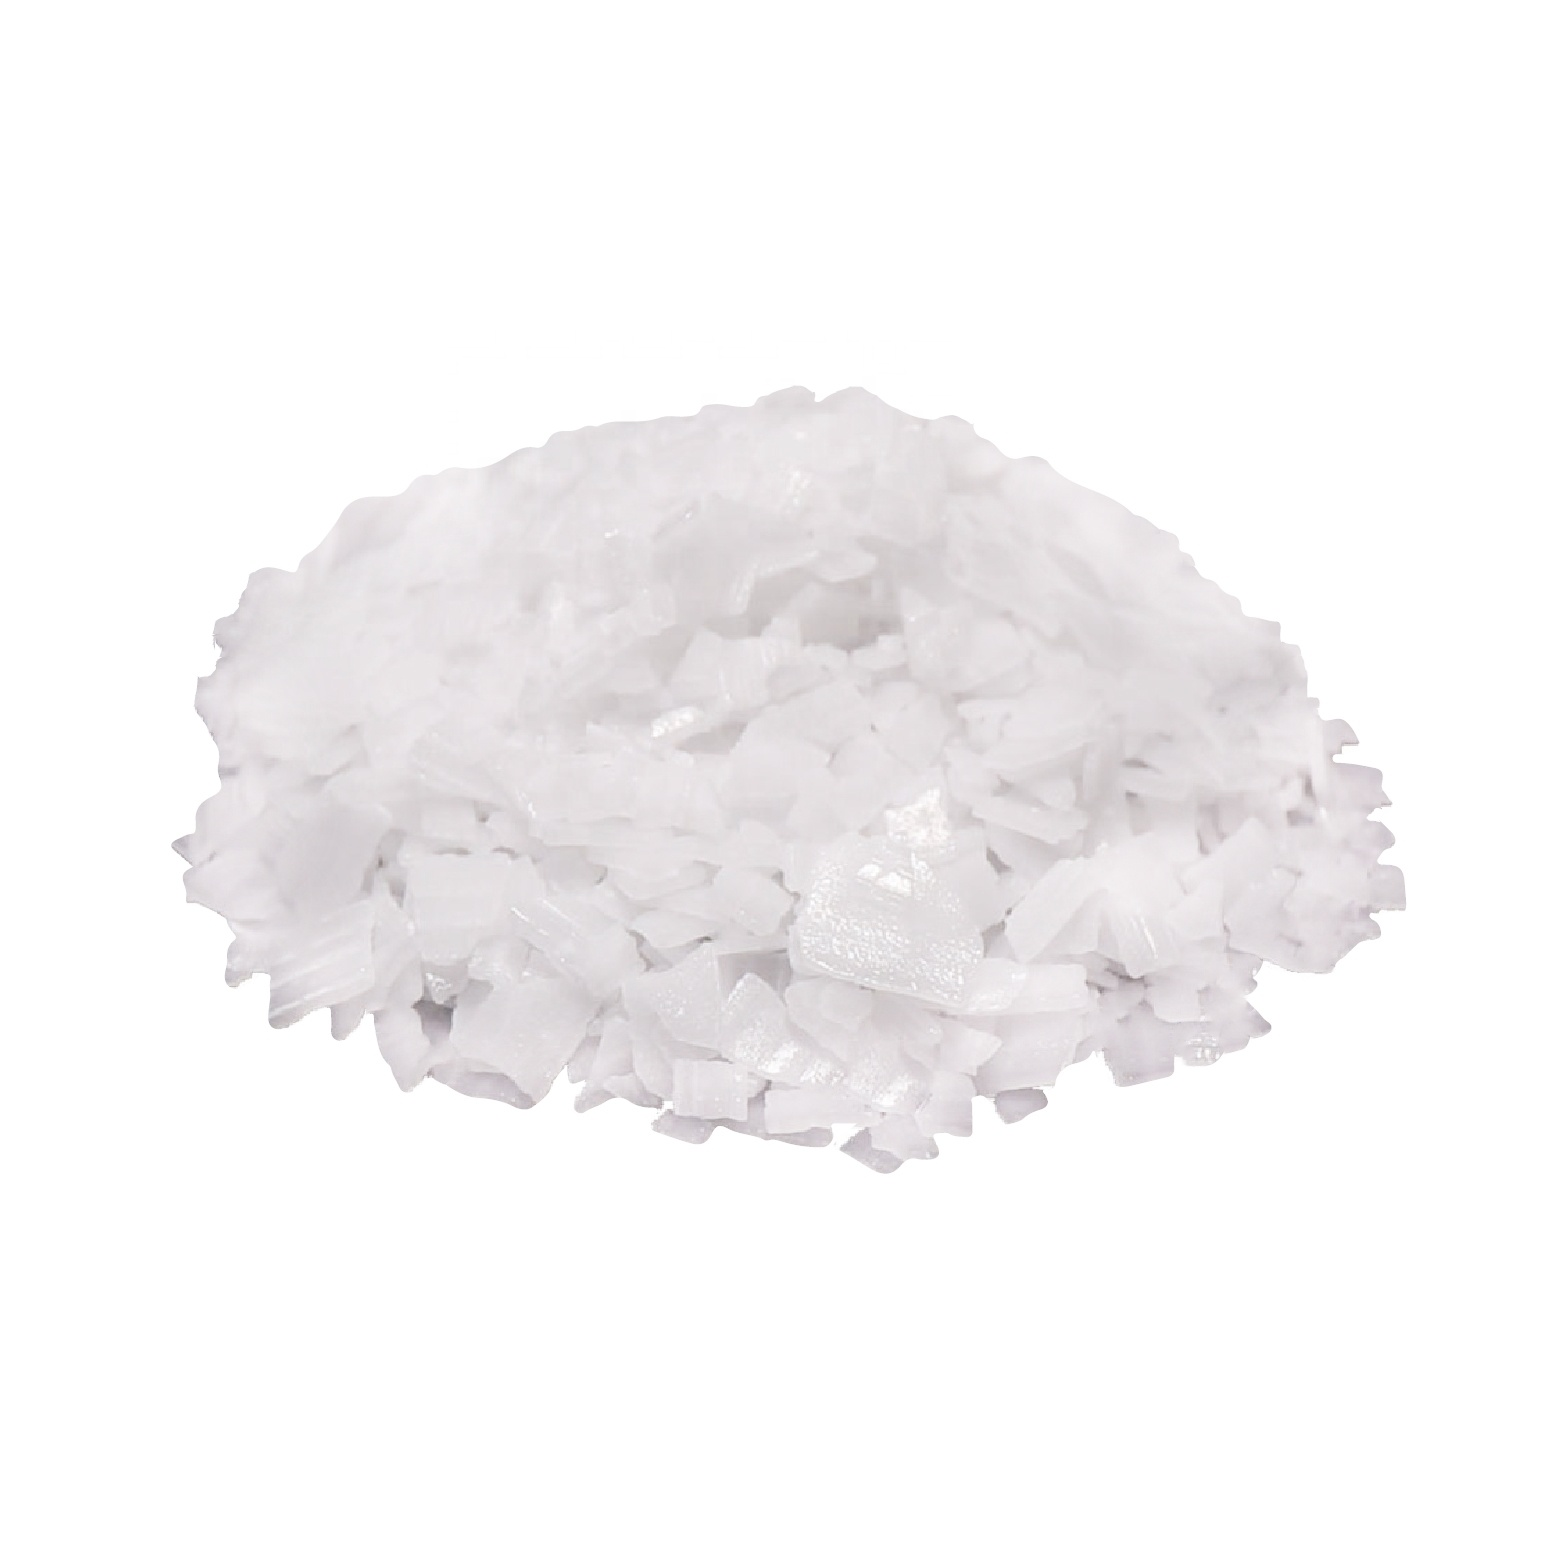 Global High Purity Sodium Hydroxide Market 2020 Industry Outlook – BASF,  Solvay, LG Chemical, AkzoNobel – Owned